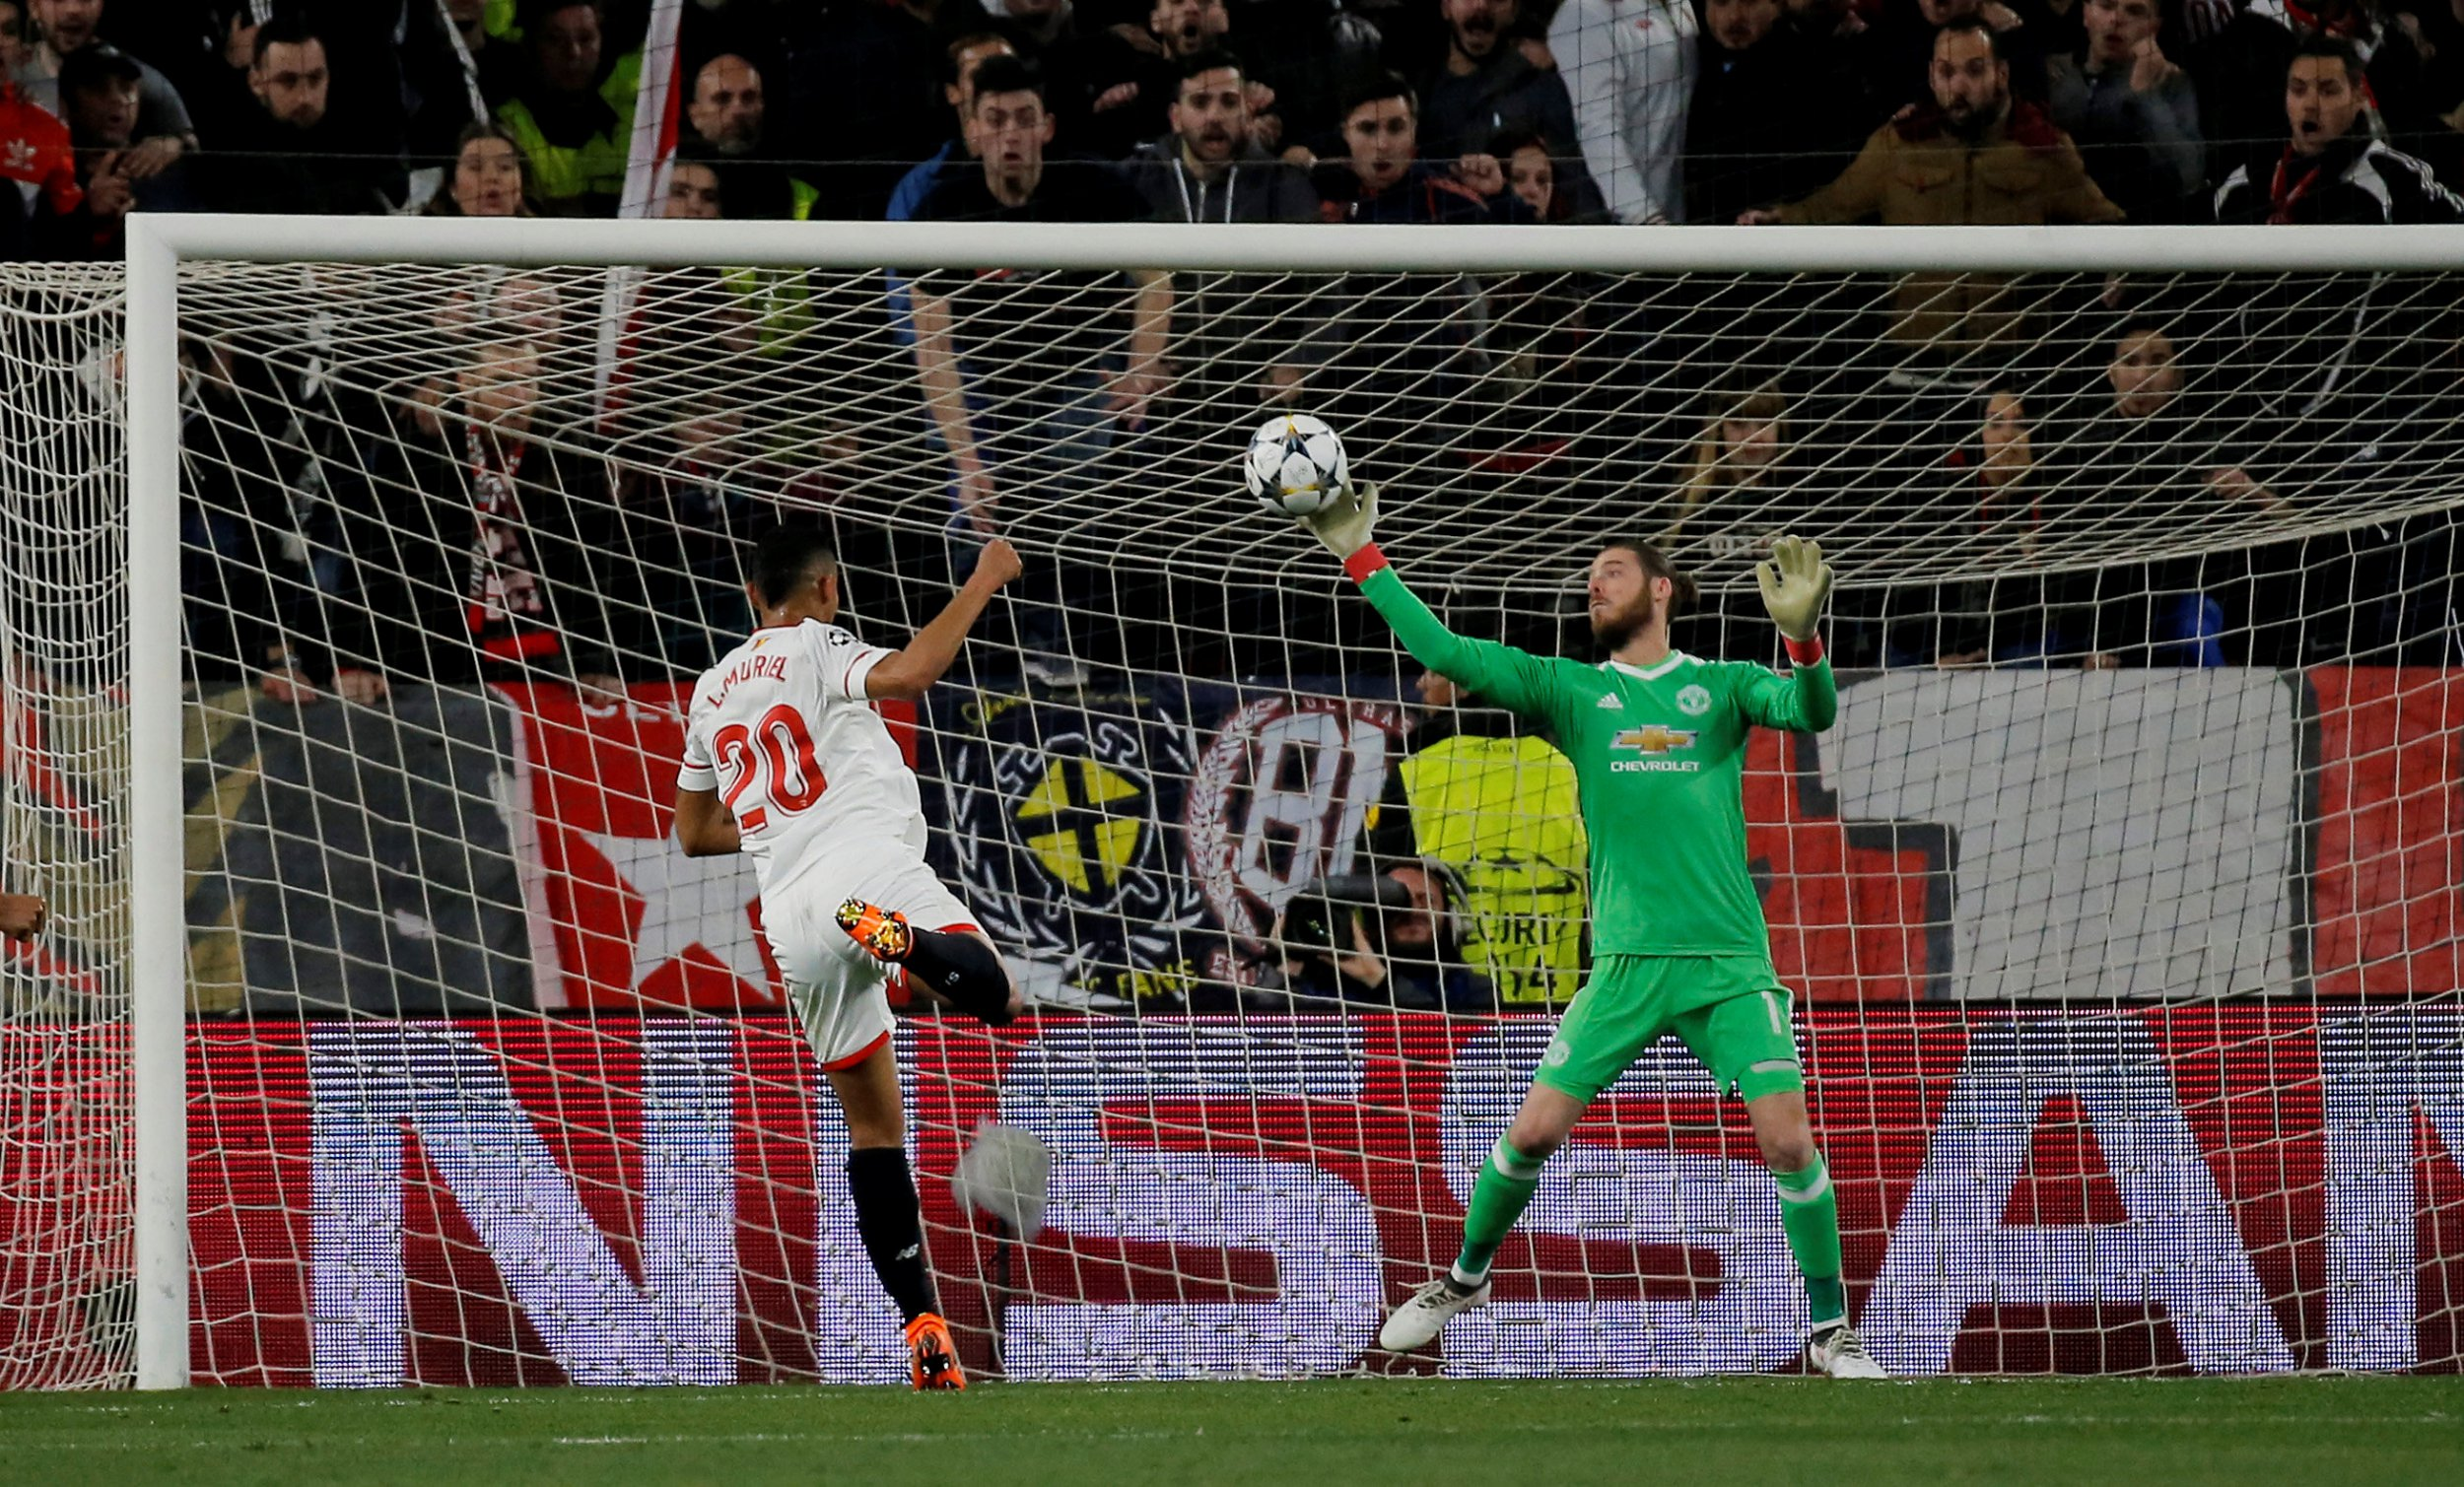 Manchester United vs Sevilla TV channel, live stream, kick-off time, date, odds and team news